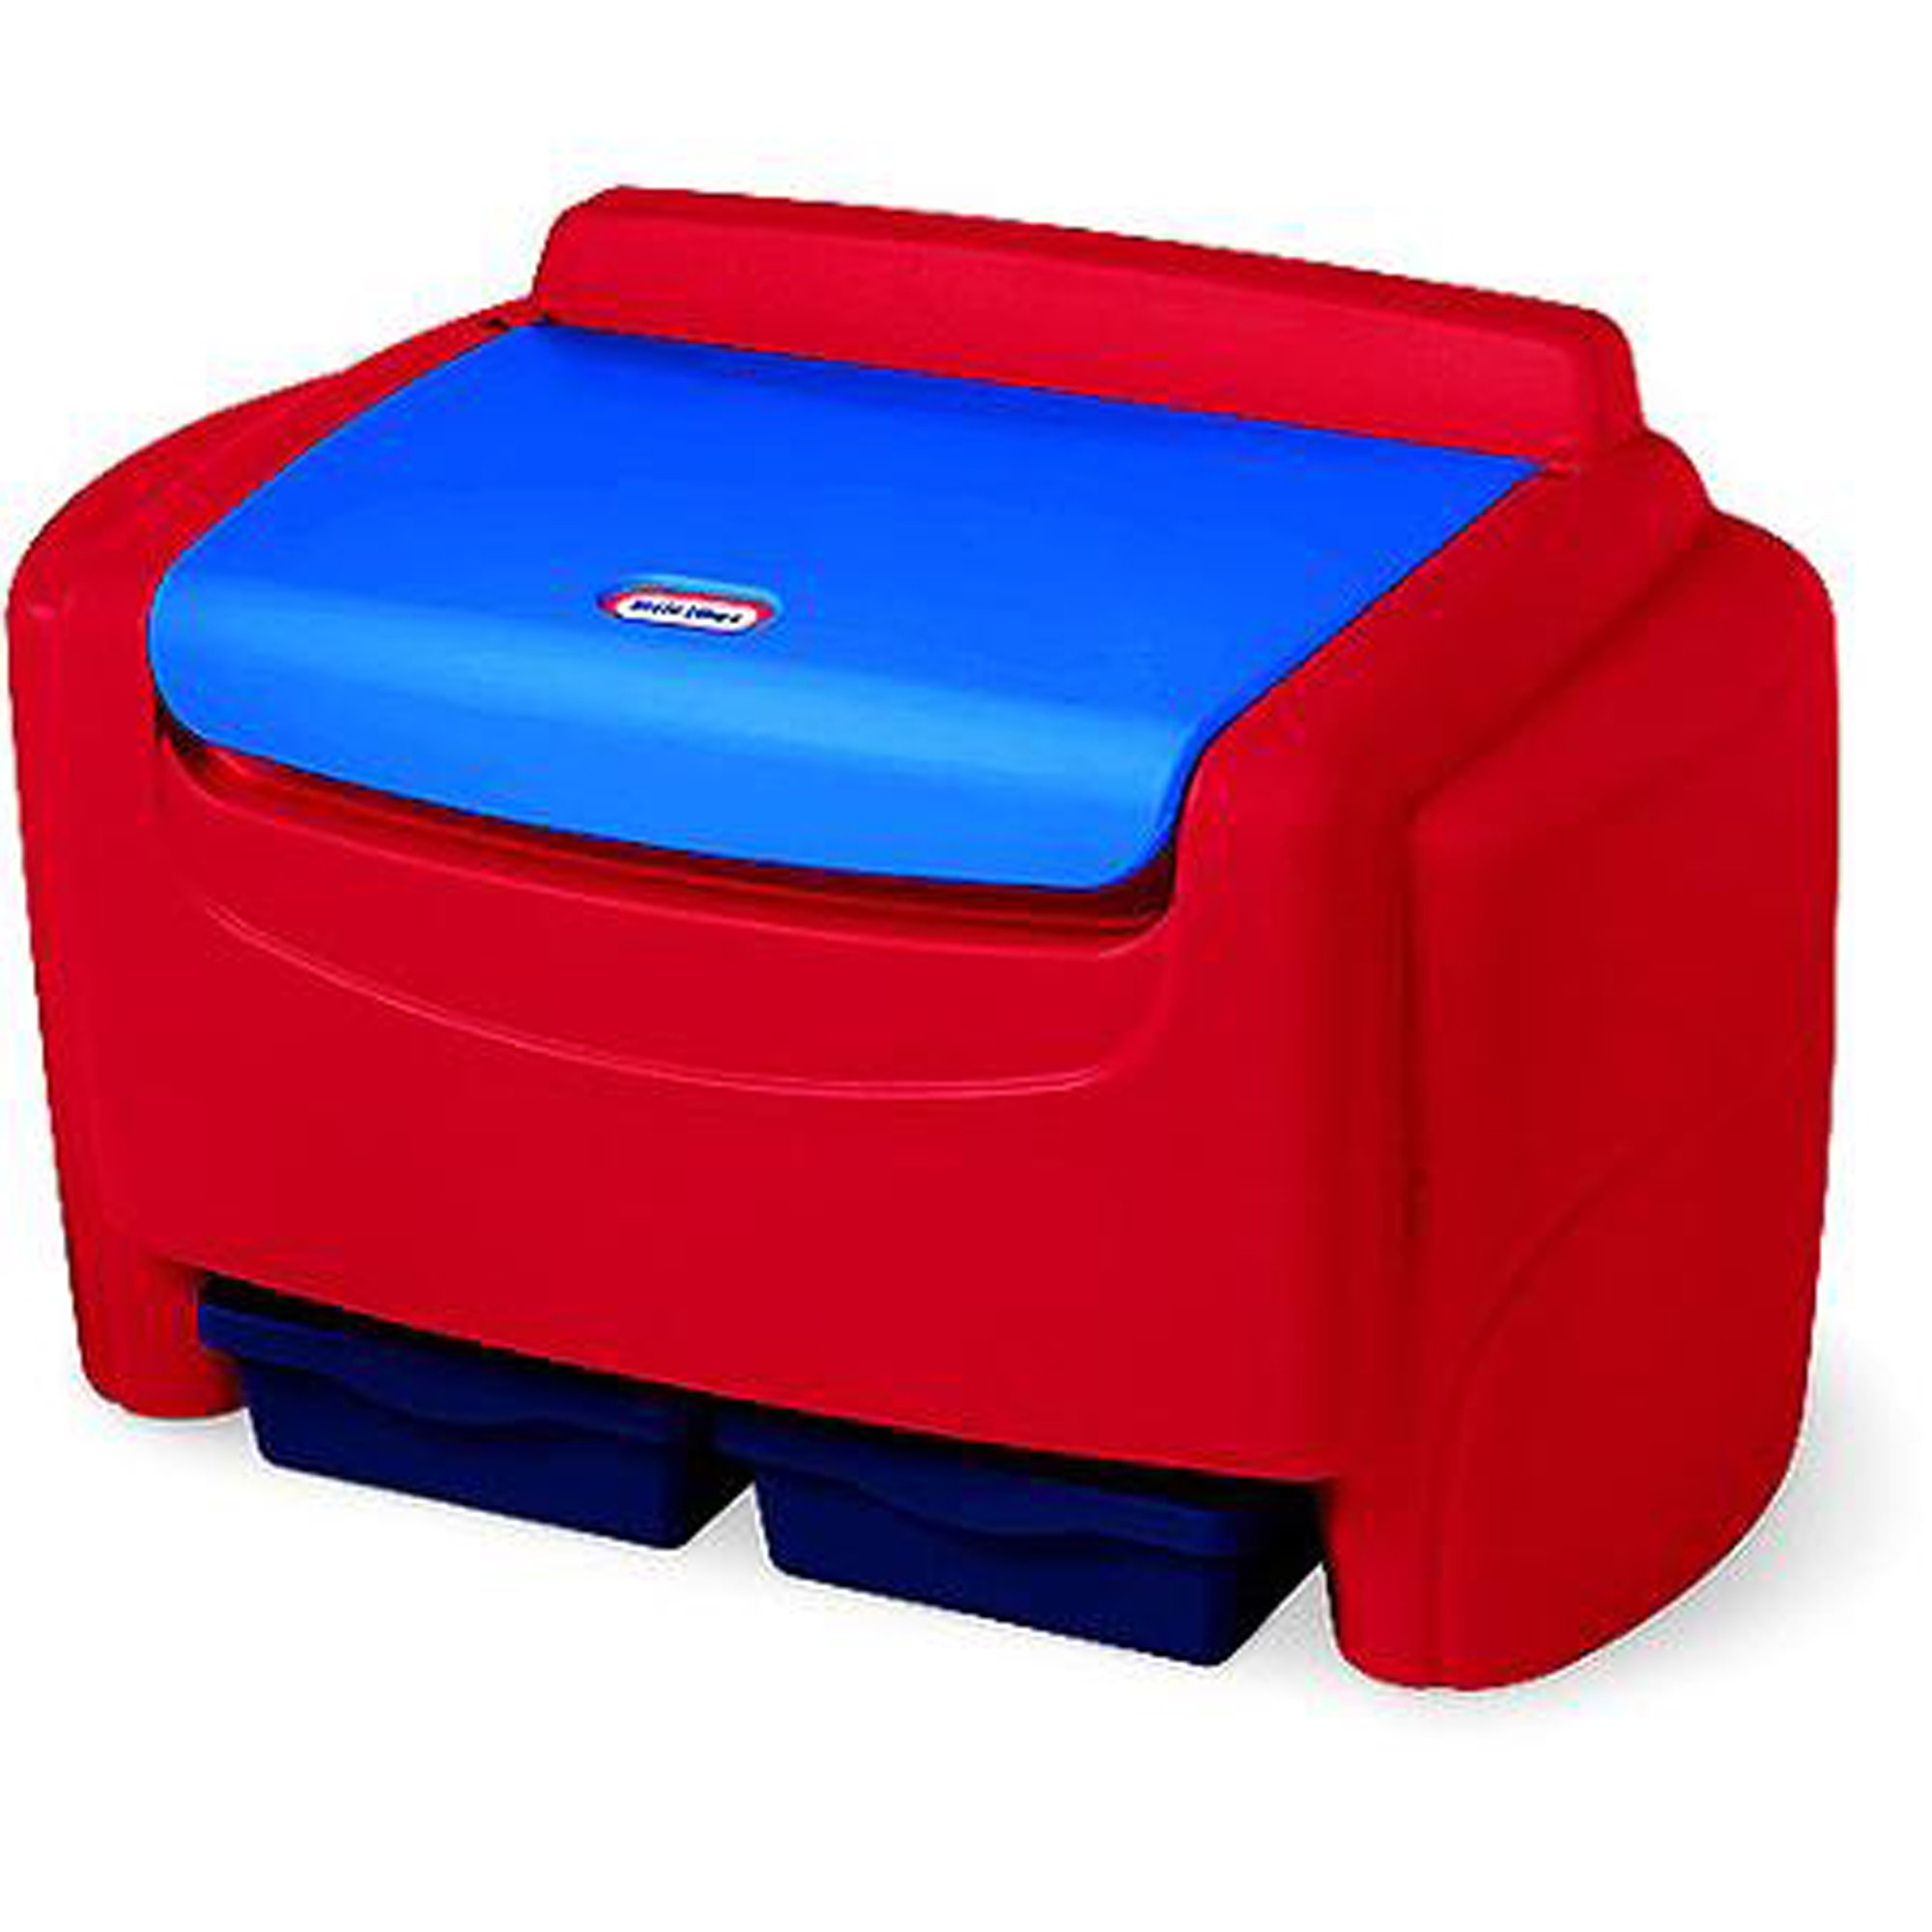 Sort' N Store Toy Chest Bright Red Color Extra-large Capacity Six Cubic Feet Storage Two Removable Bins Detachable Lid Lightweight Plastic Material Clutter-free Organized Big Toys